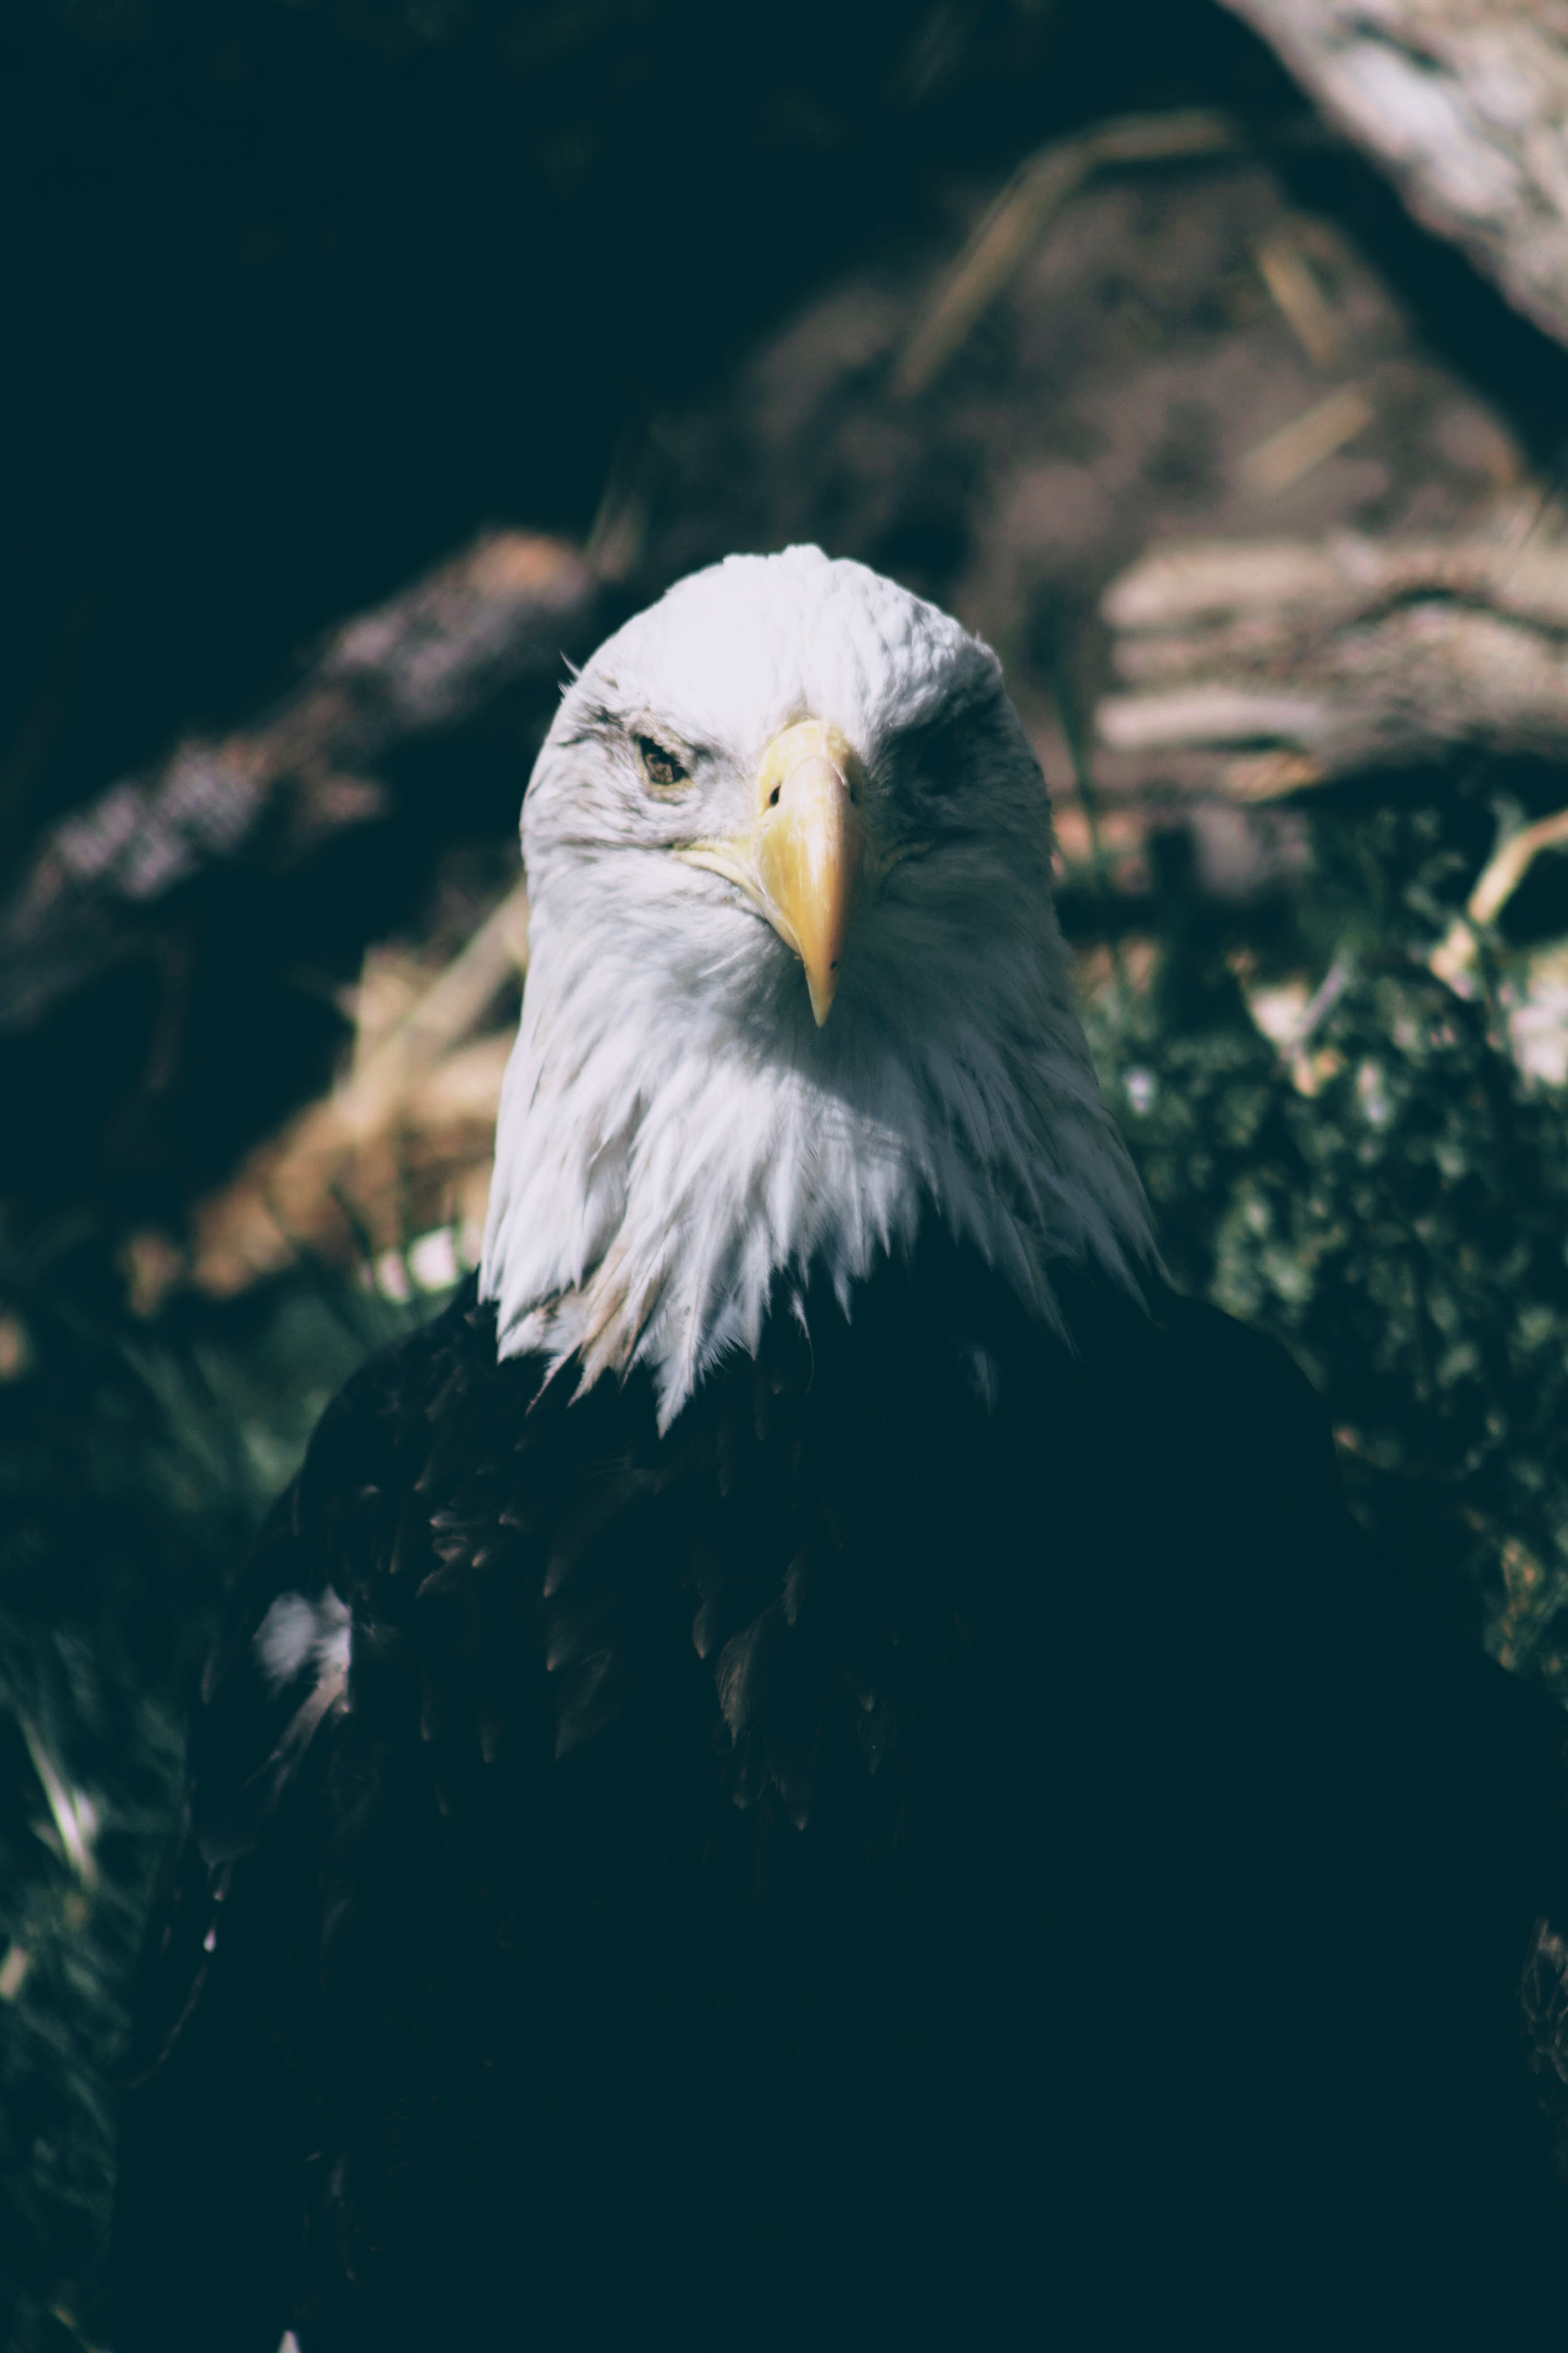 A bald eagle facing directly at camera beside a bush and some trees